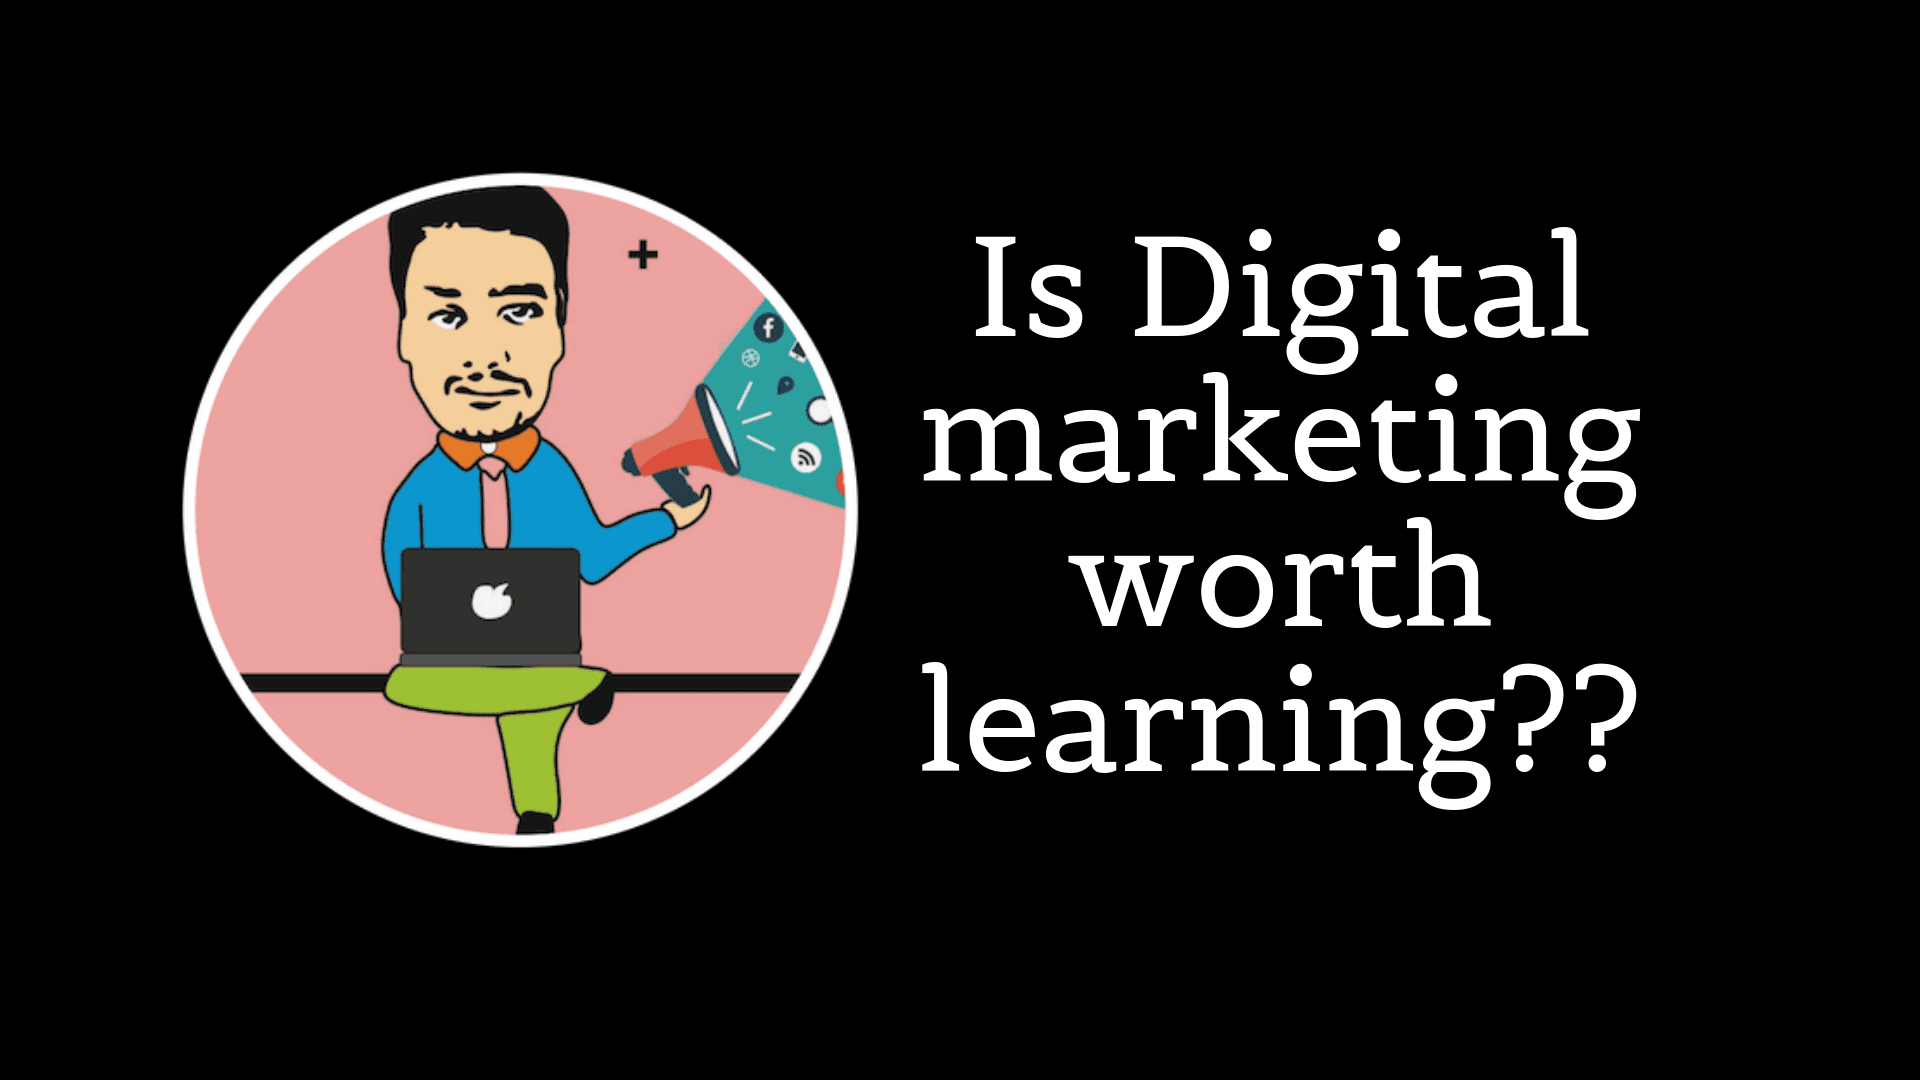 Dp Vishwakarma, Switched Career from Engineering to Digital Marketing to become Digital Marketing Expert